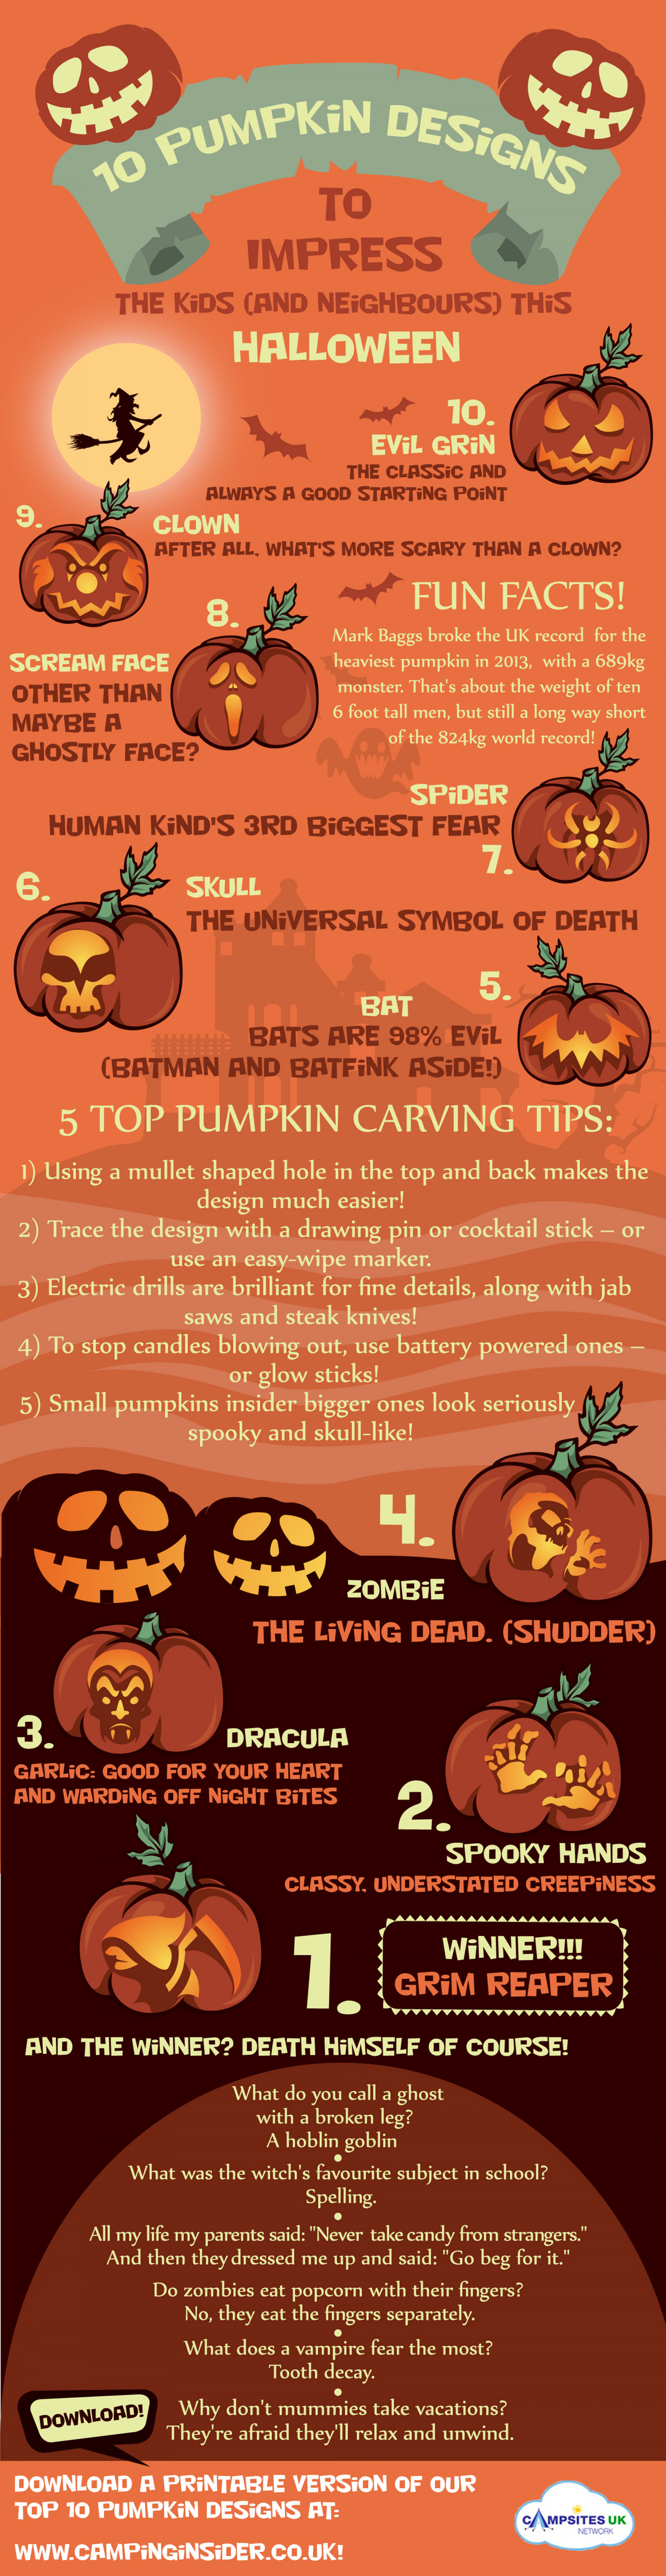 10 Pumpkin Designs to Impress the Kids and Neighbours this Halloween! Infographic